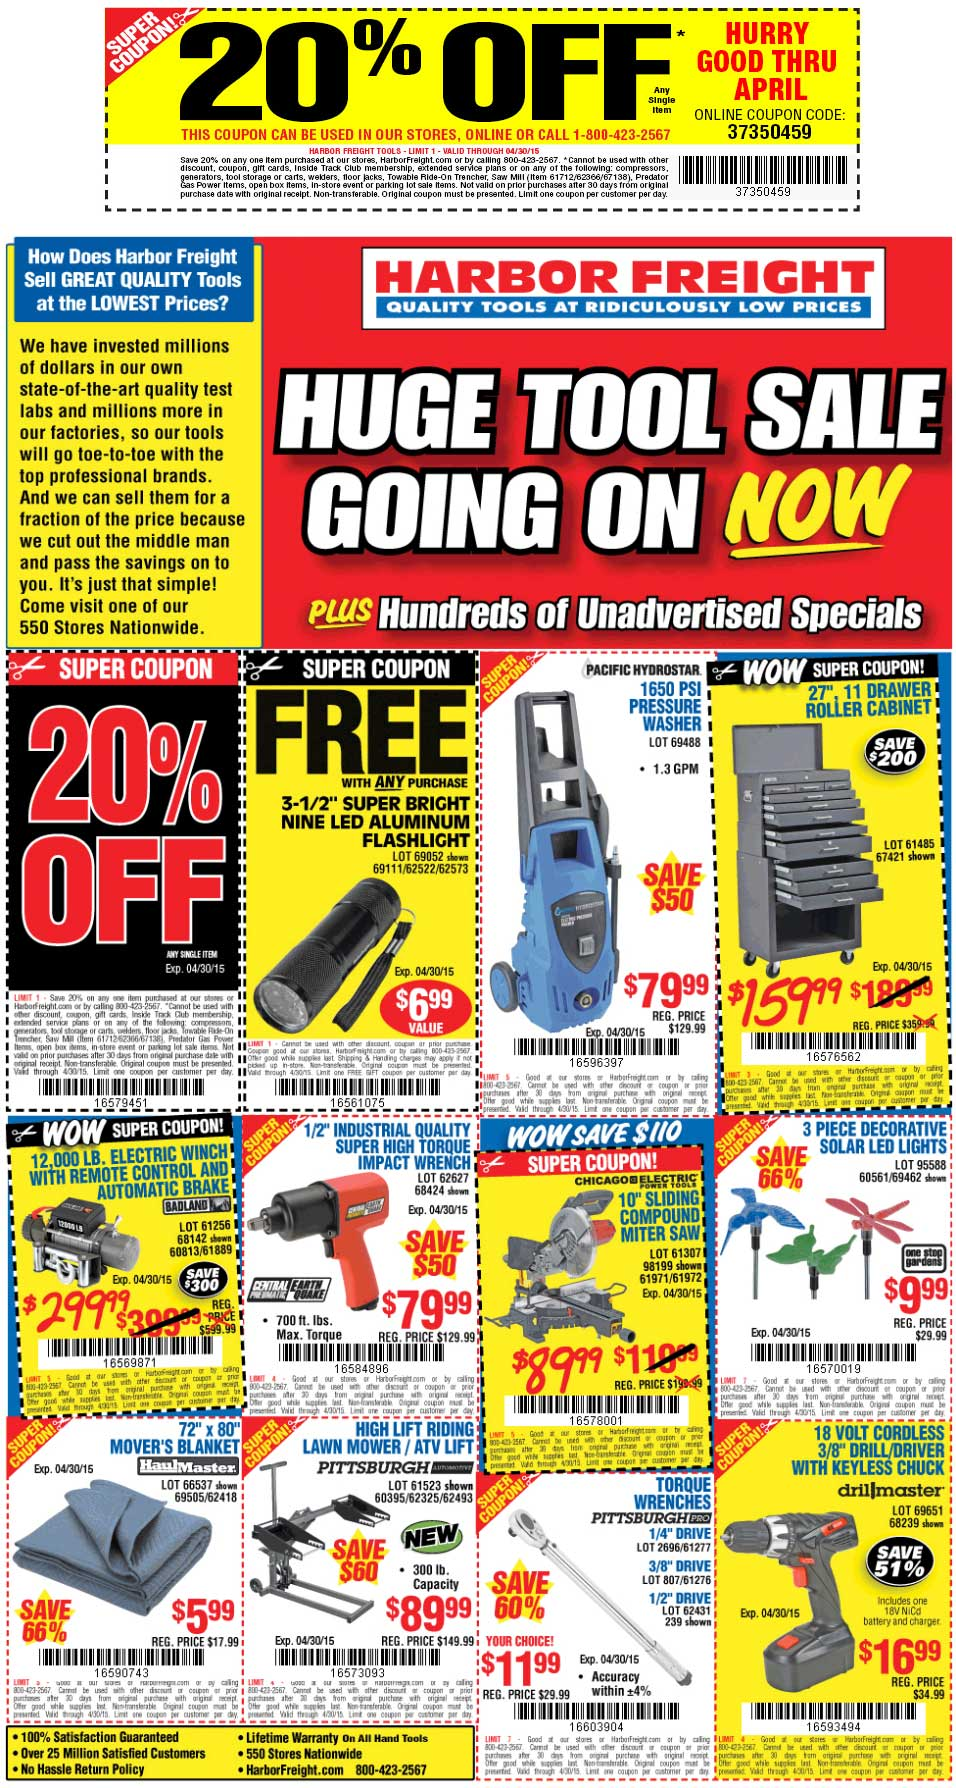 Harbor Freight Coupon March 2019 20% off a single item at Harbor Freight Tools, or online via promo code 37350459